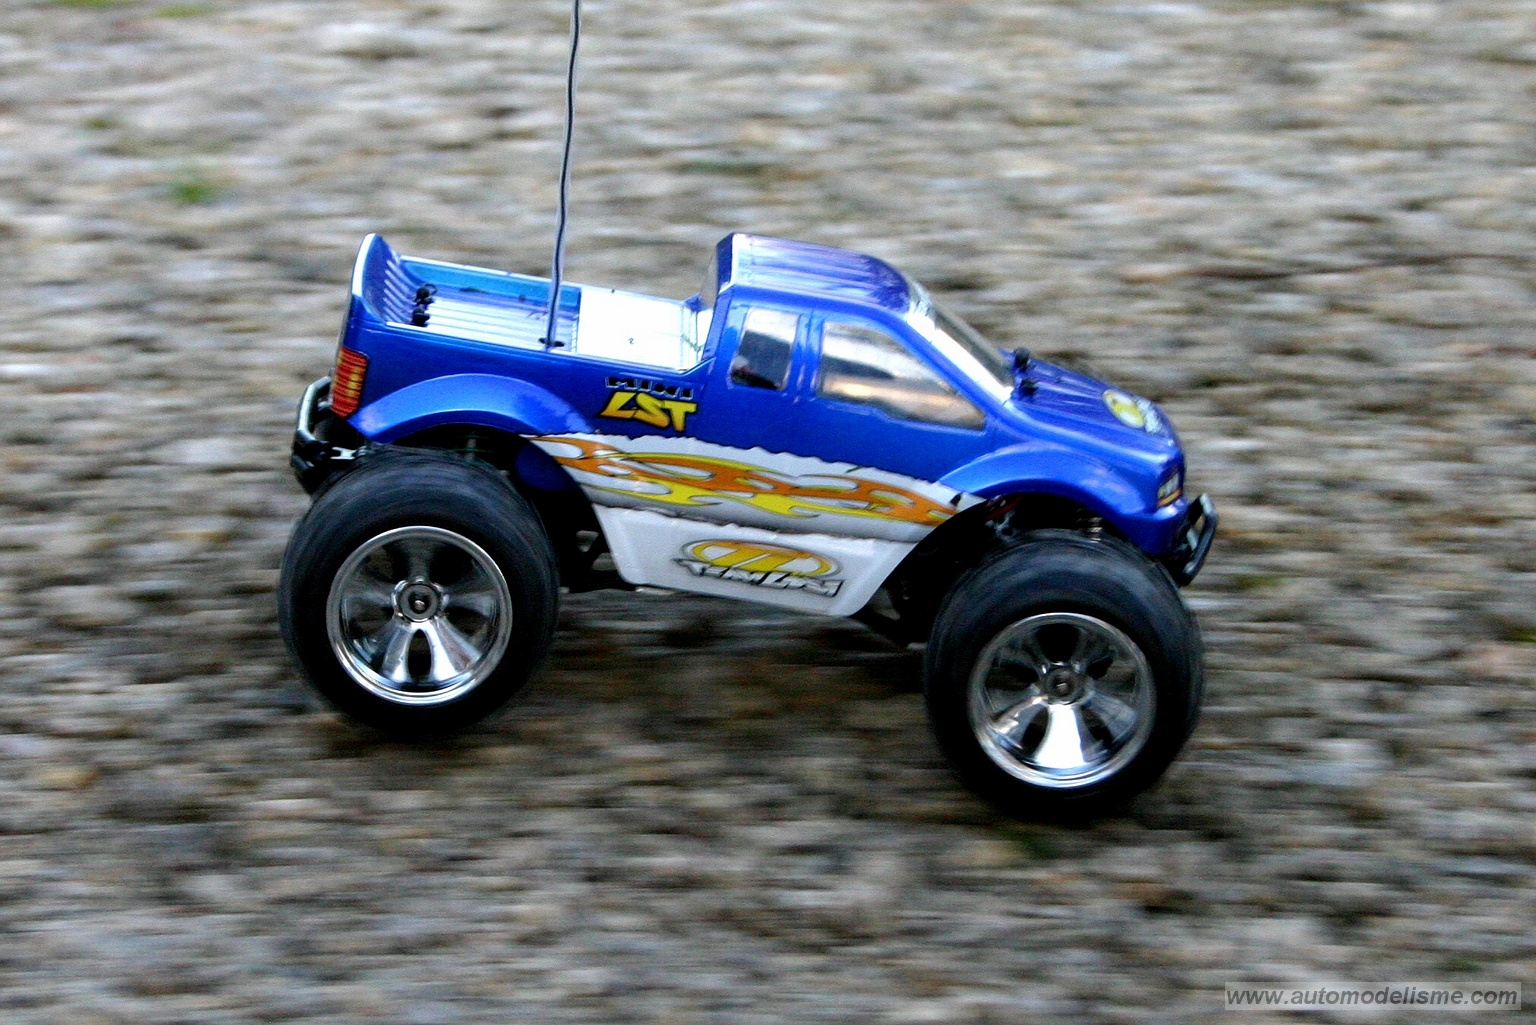 losi the leaders in rc car and truck innovation and design